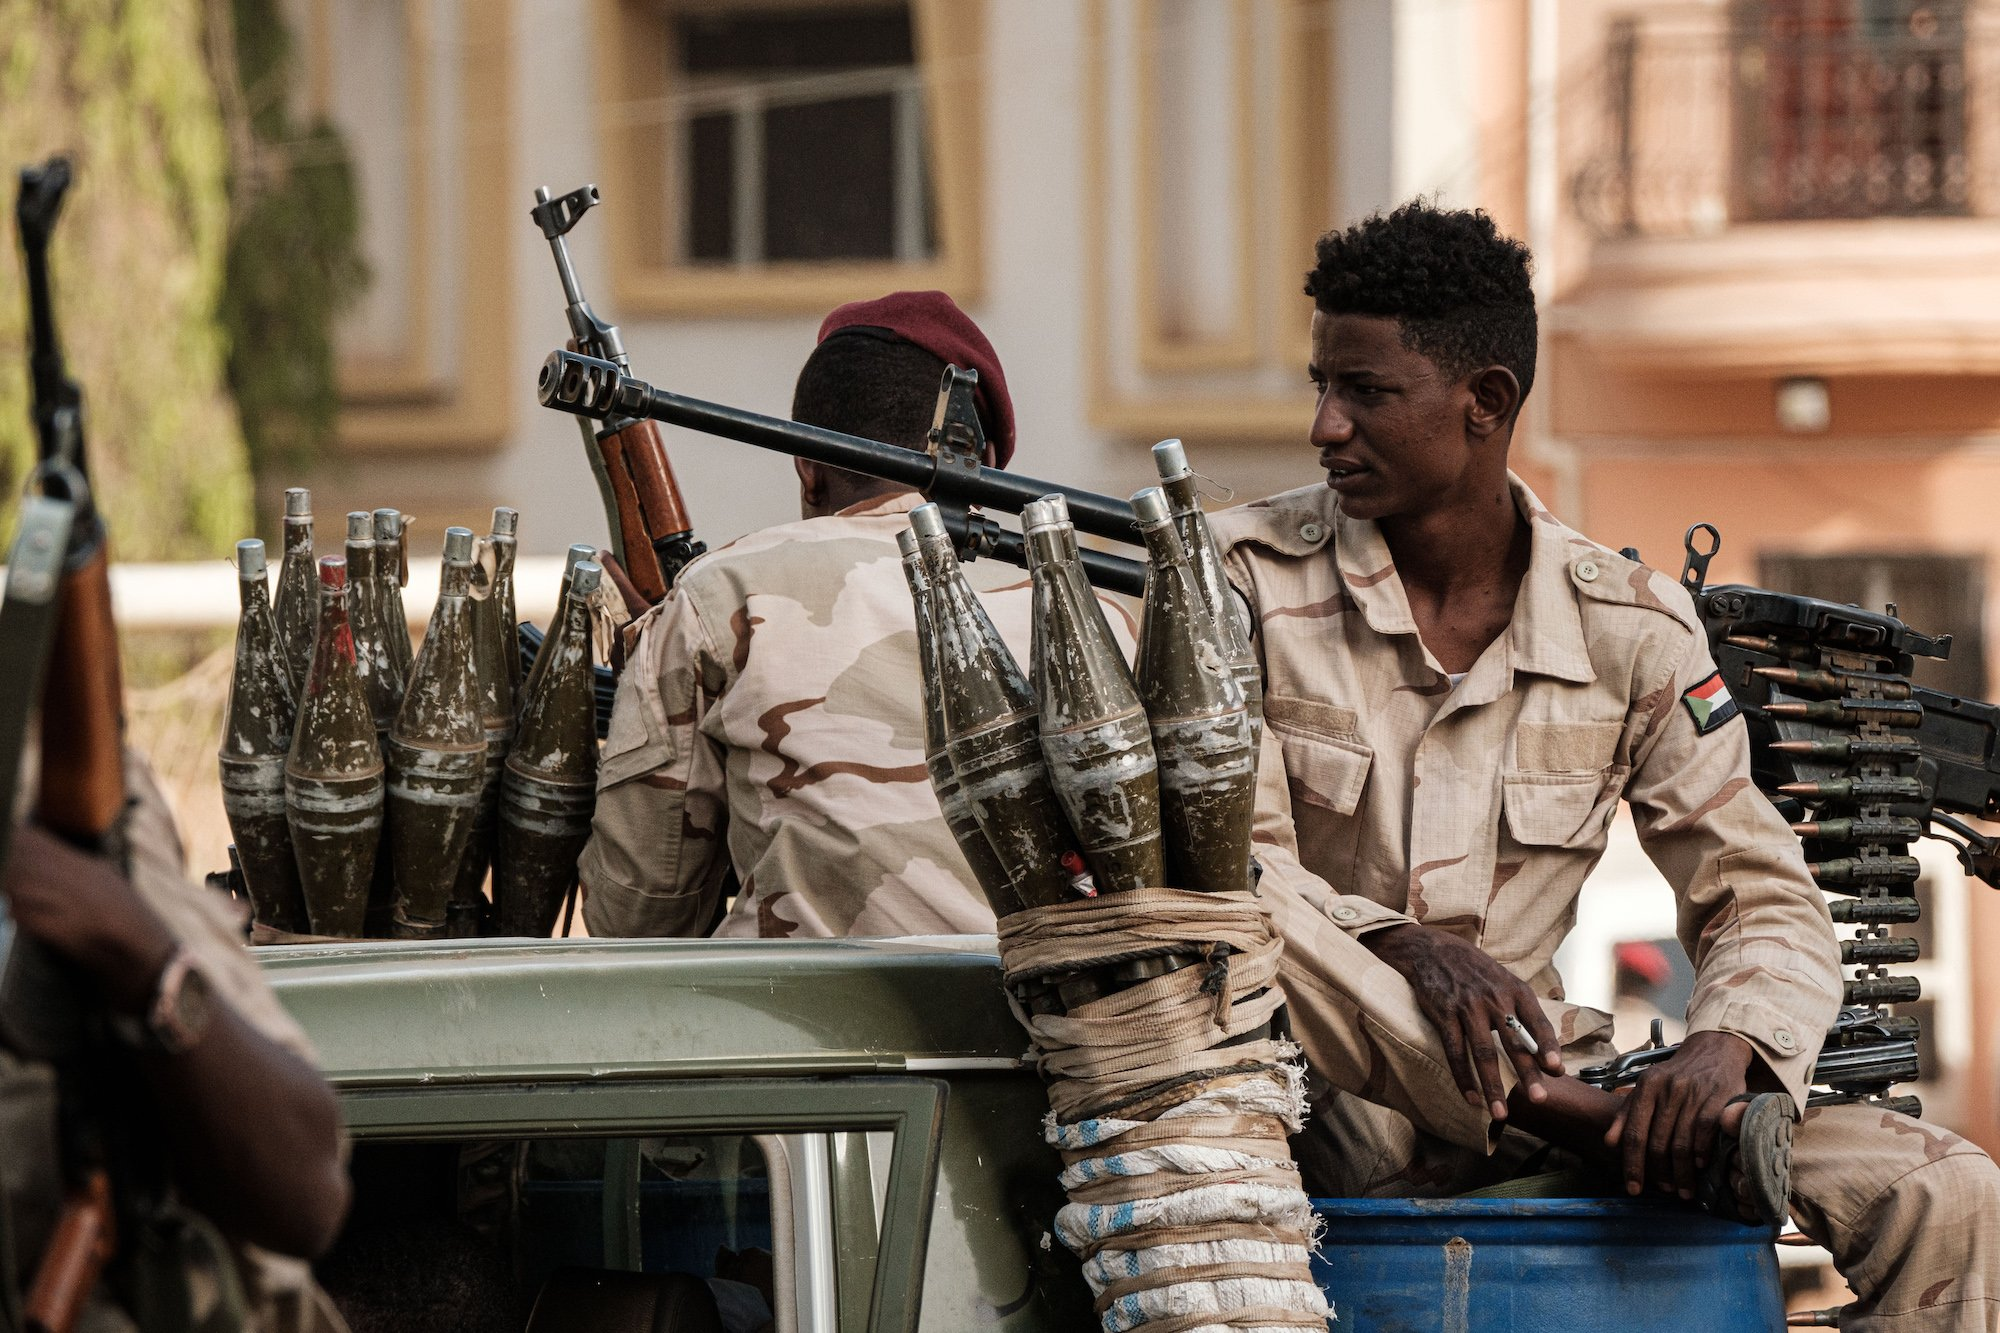 Gold, weapons, fighters: Sudanese Janjaweed's international path to power